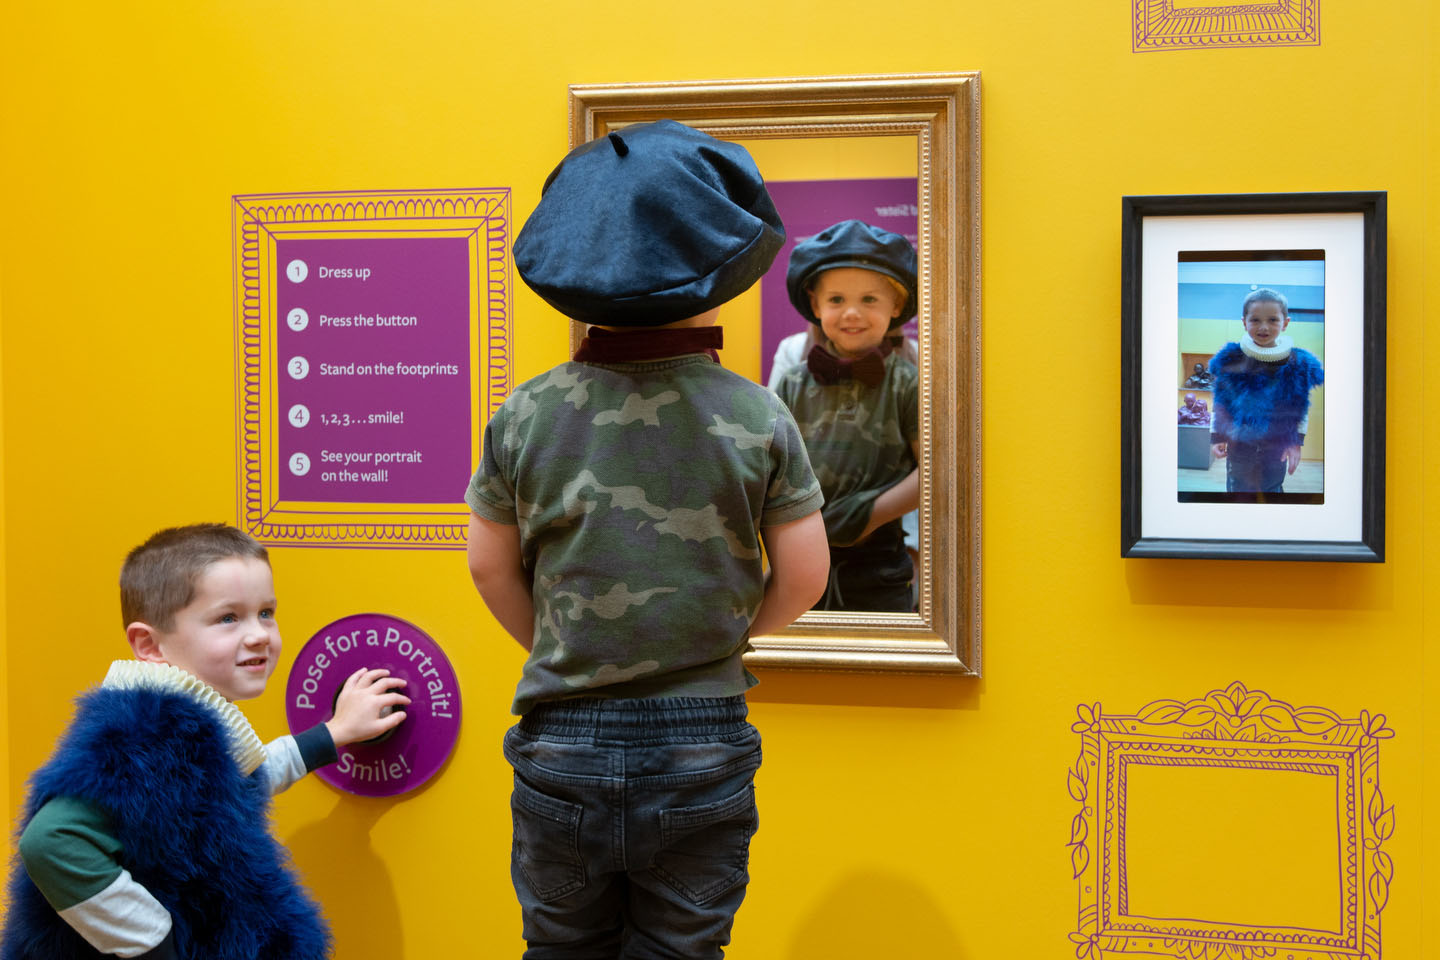 Two children dress up, one wearing a beret in front of a mirror